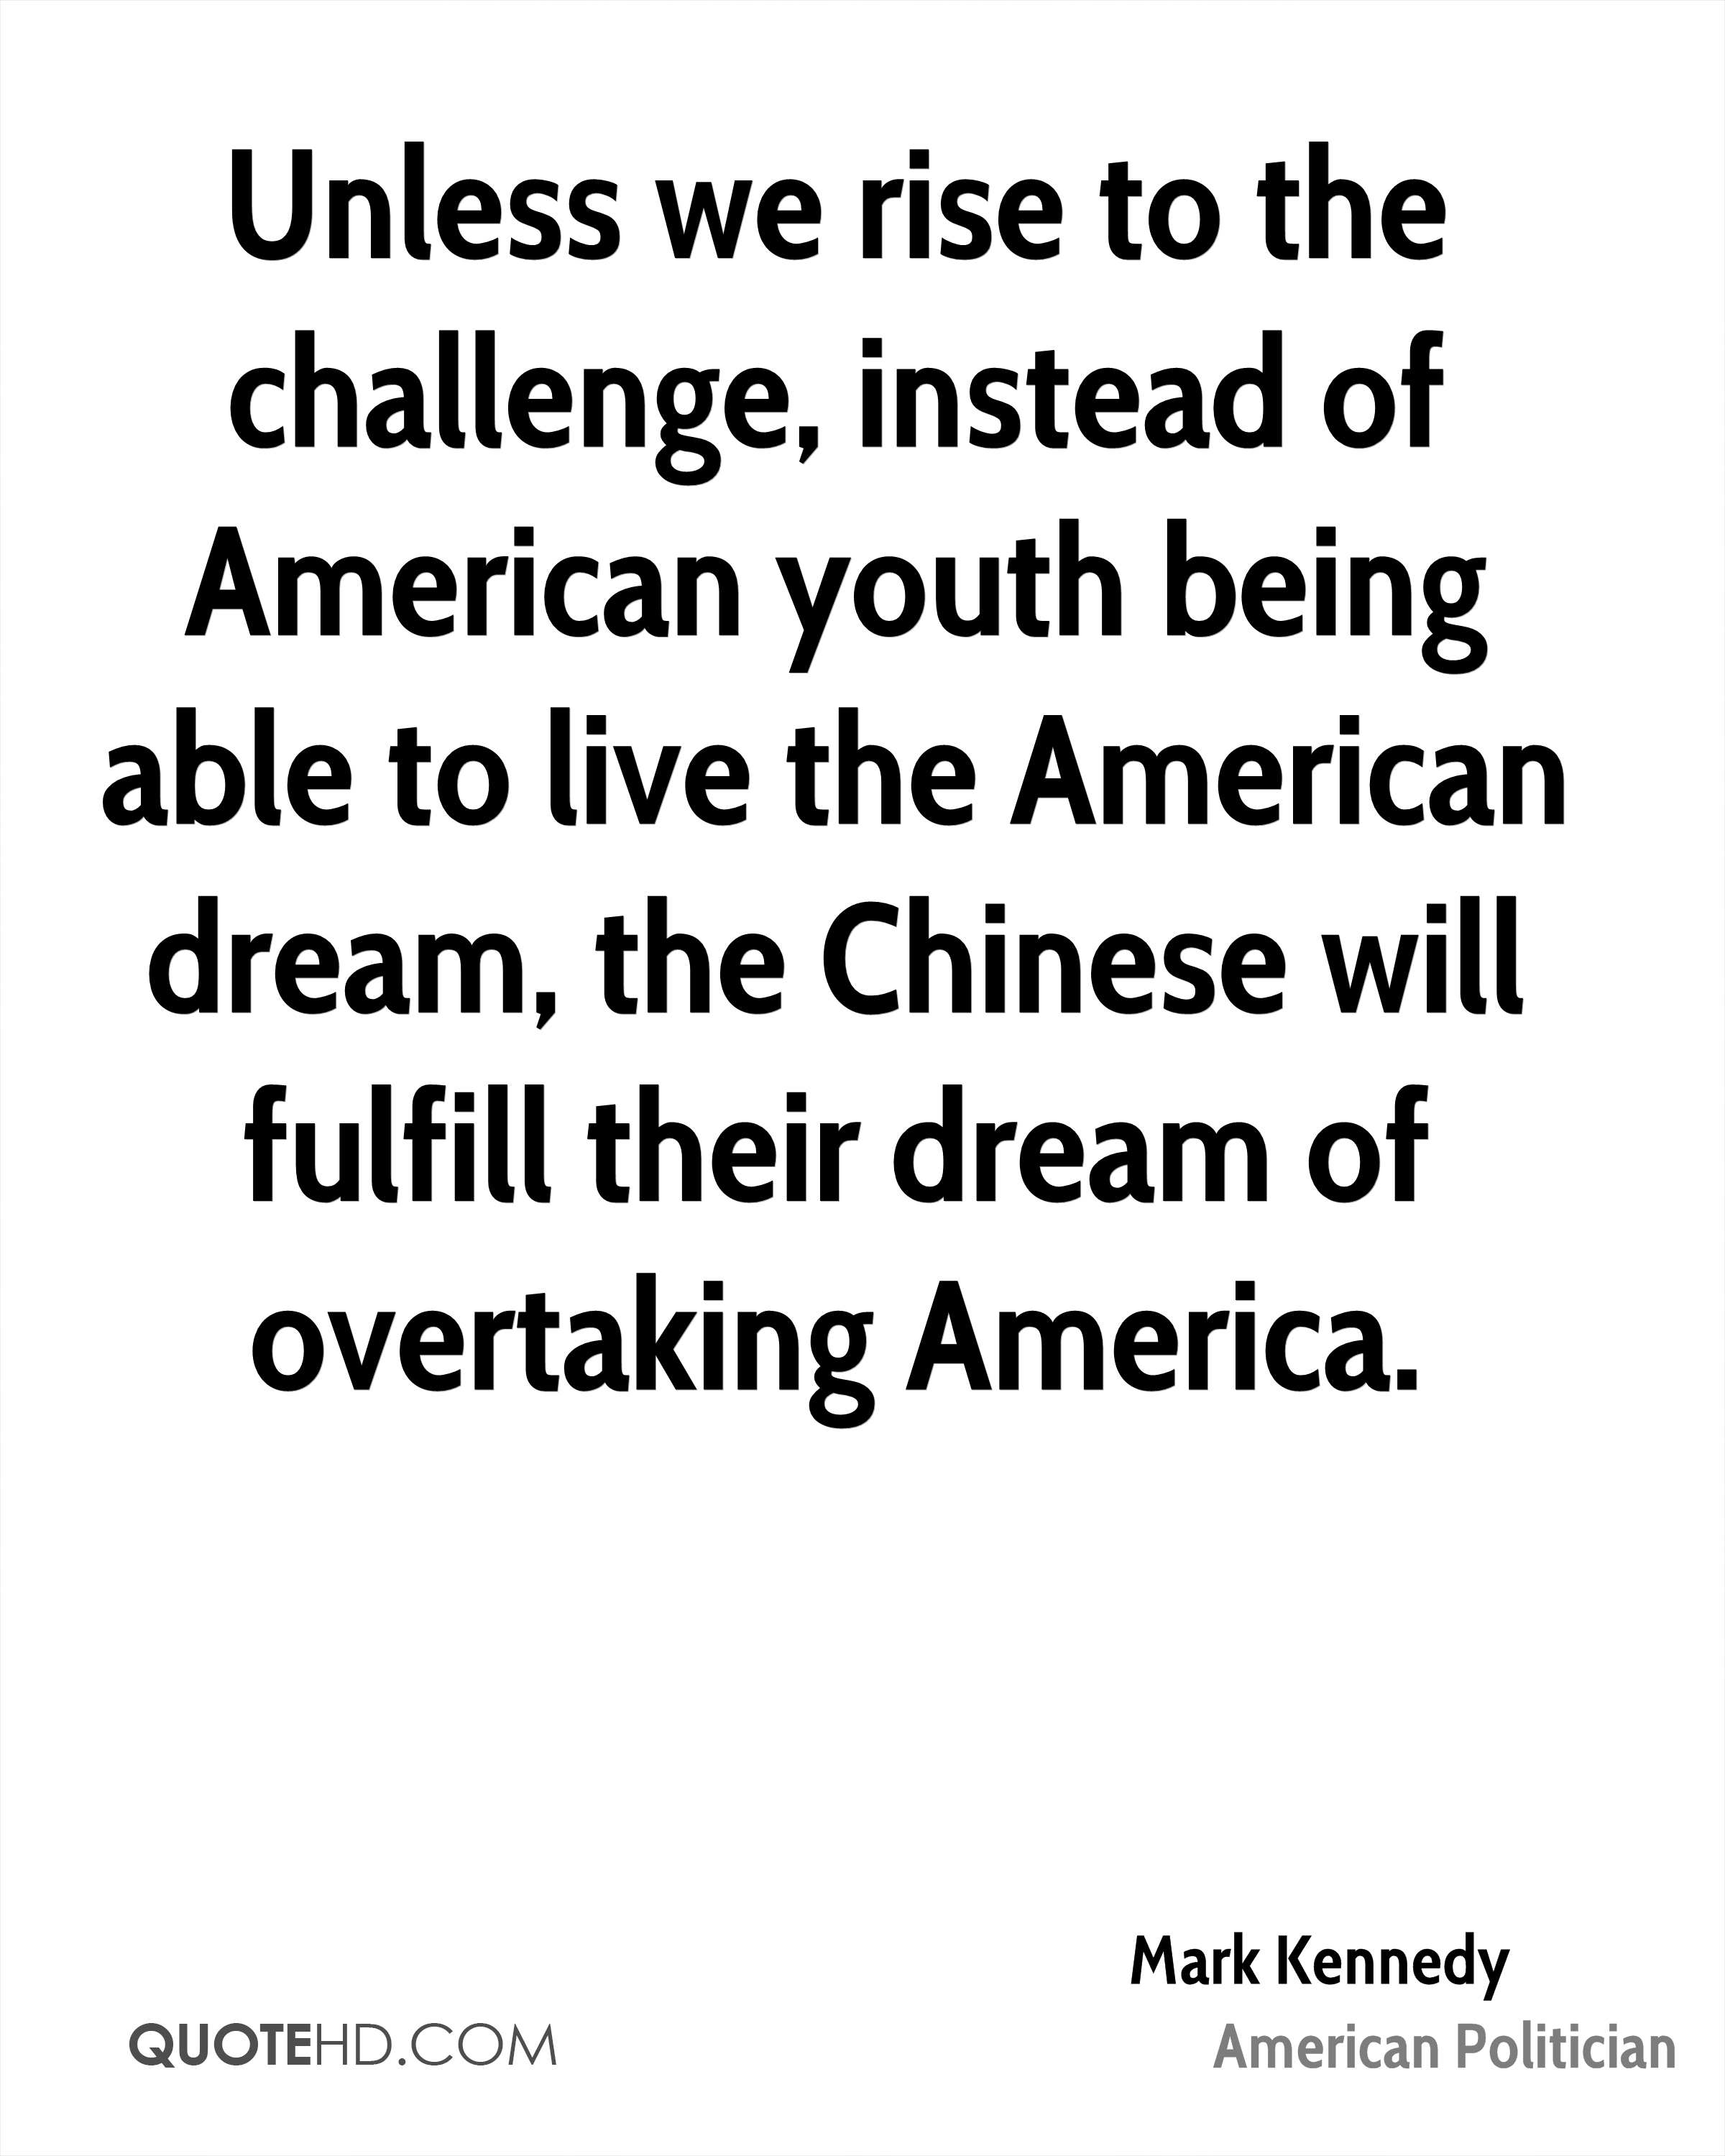 Unless we rise to the challenge, instead of American youth being able to live the American dream, the Chinese will fulfill their dream of overtaking America.